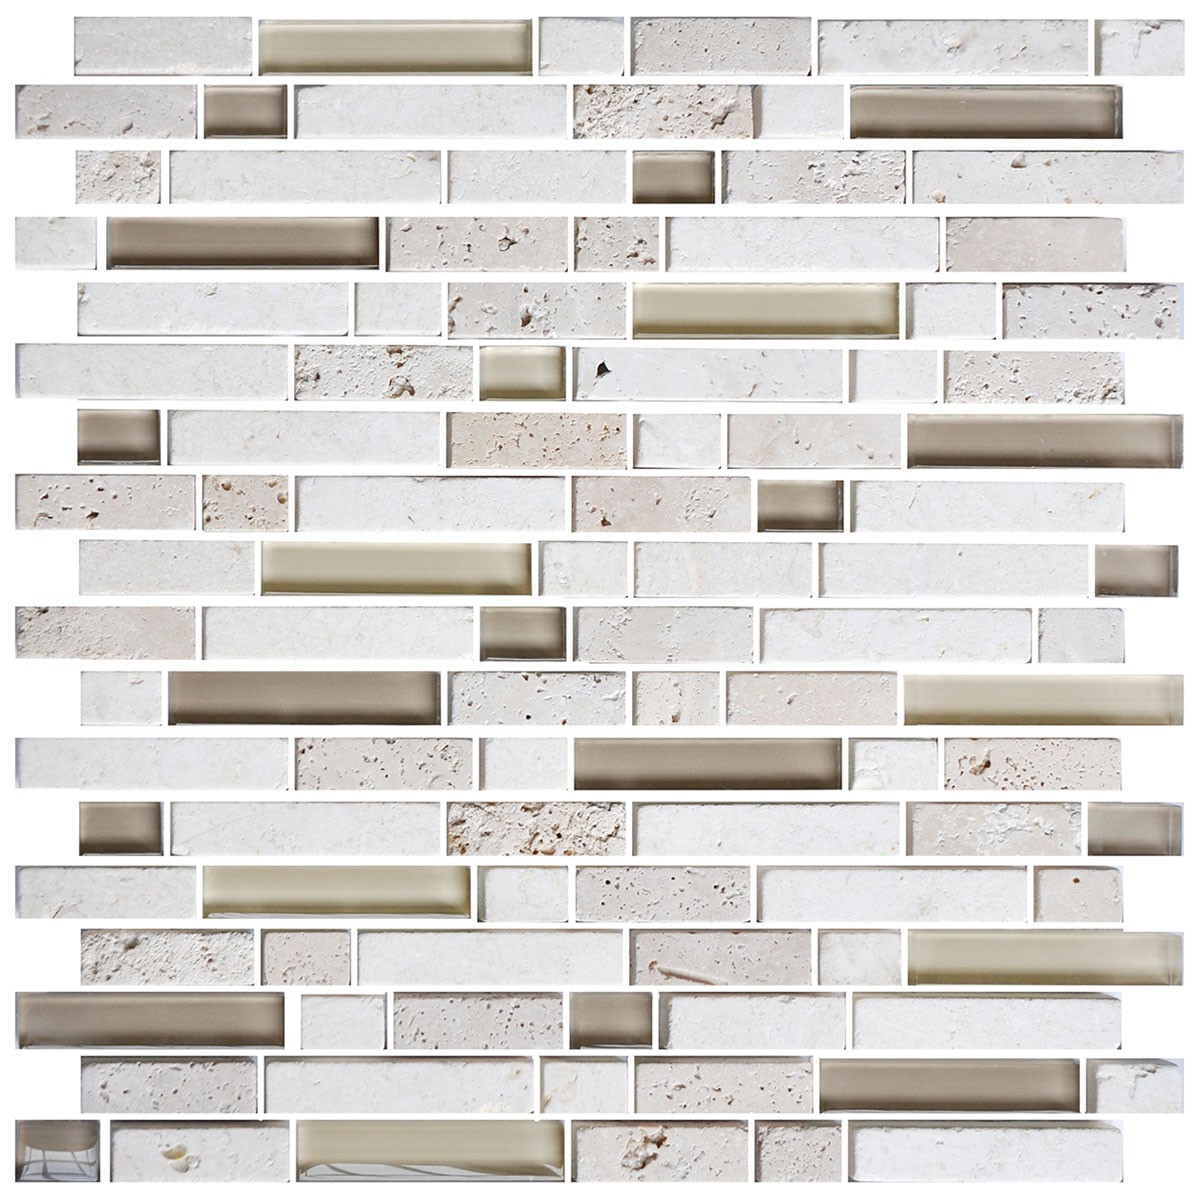 8mm Thickness Electroplated Glass Mosaic Tile - 12 in. x 12 in. (DK-RS234873A1)